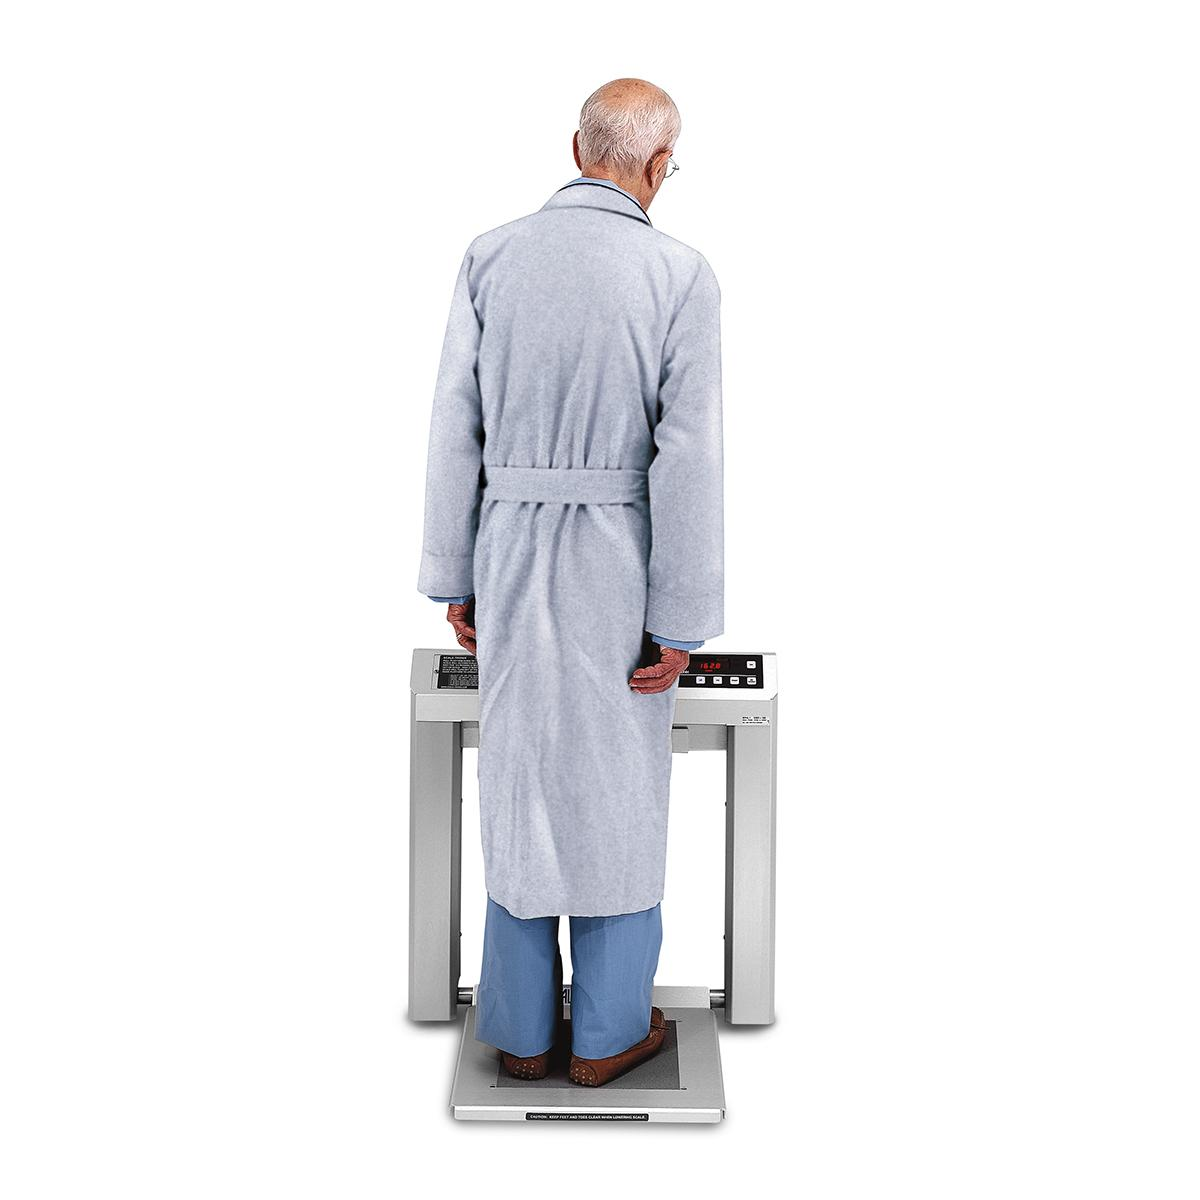 Patient standing on Stow-A-Weigh Stand-on Scale